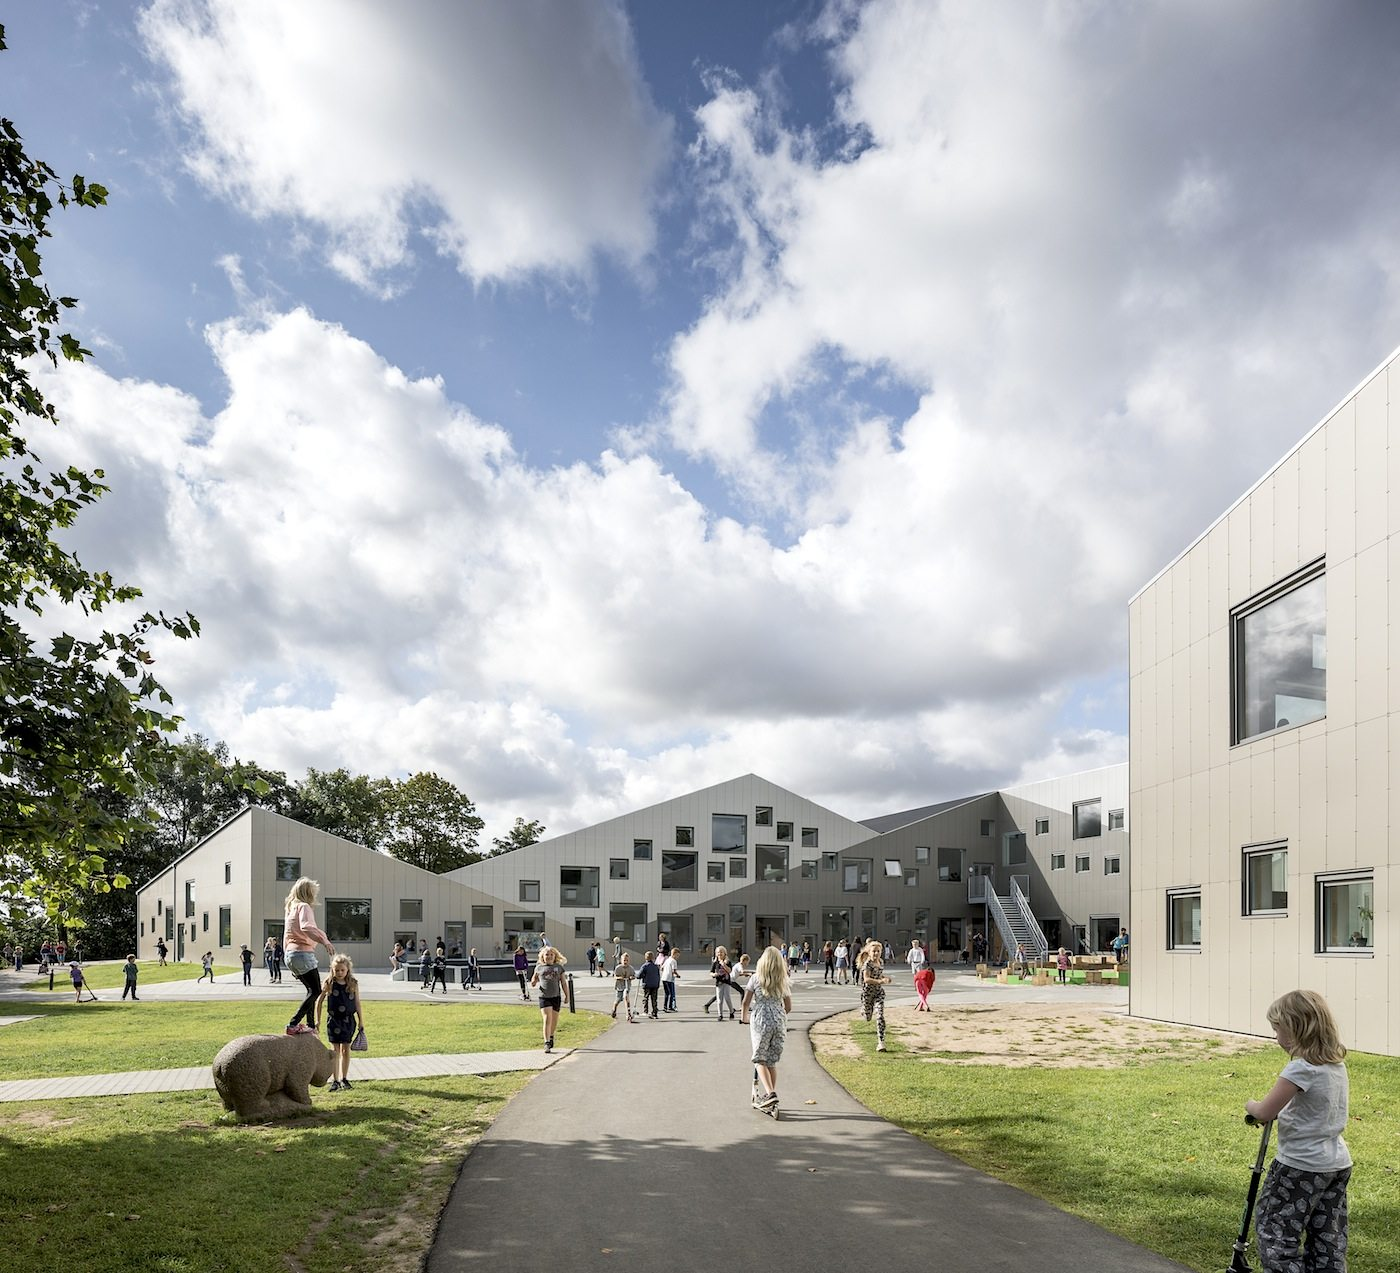 Skovbakkeskolen, Odder.  The school was completed in 2017. The new complex combines a school for 650 students and a daycare centre for 100 children in a diverse and transparent new learning environment.